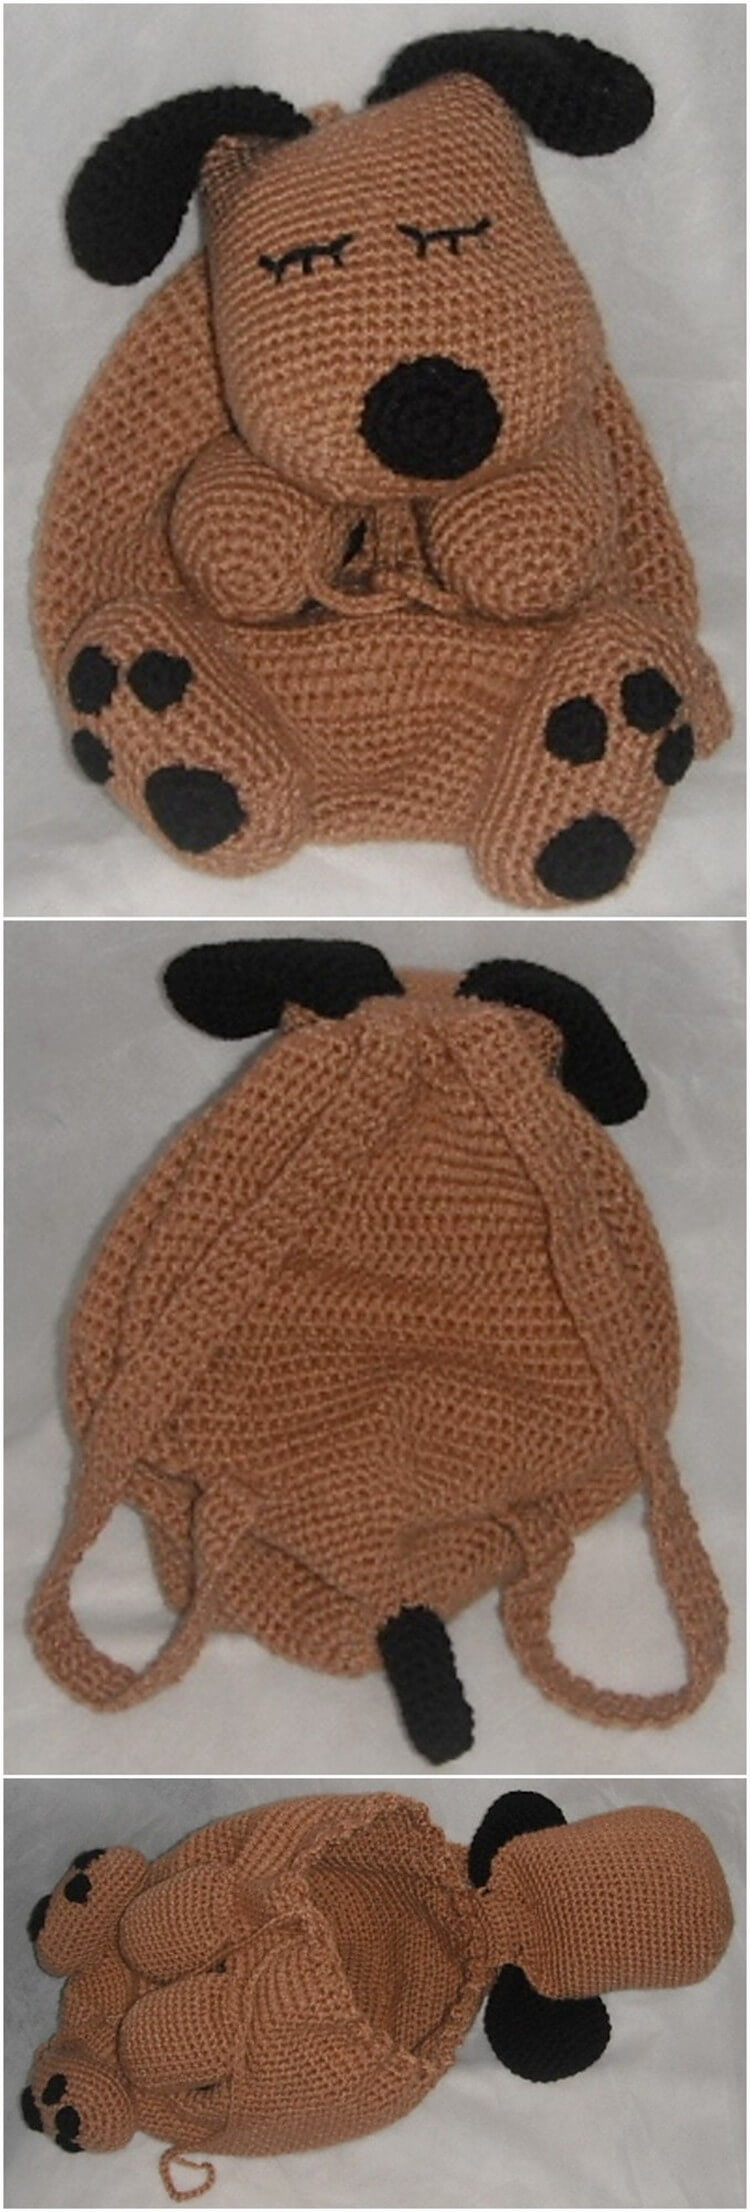 Crochet Backpack Pattern (1)